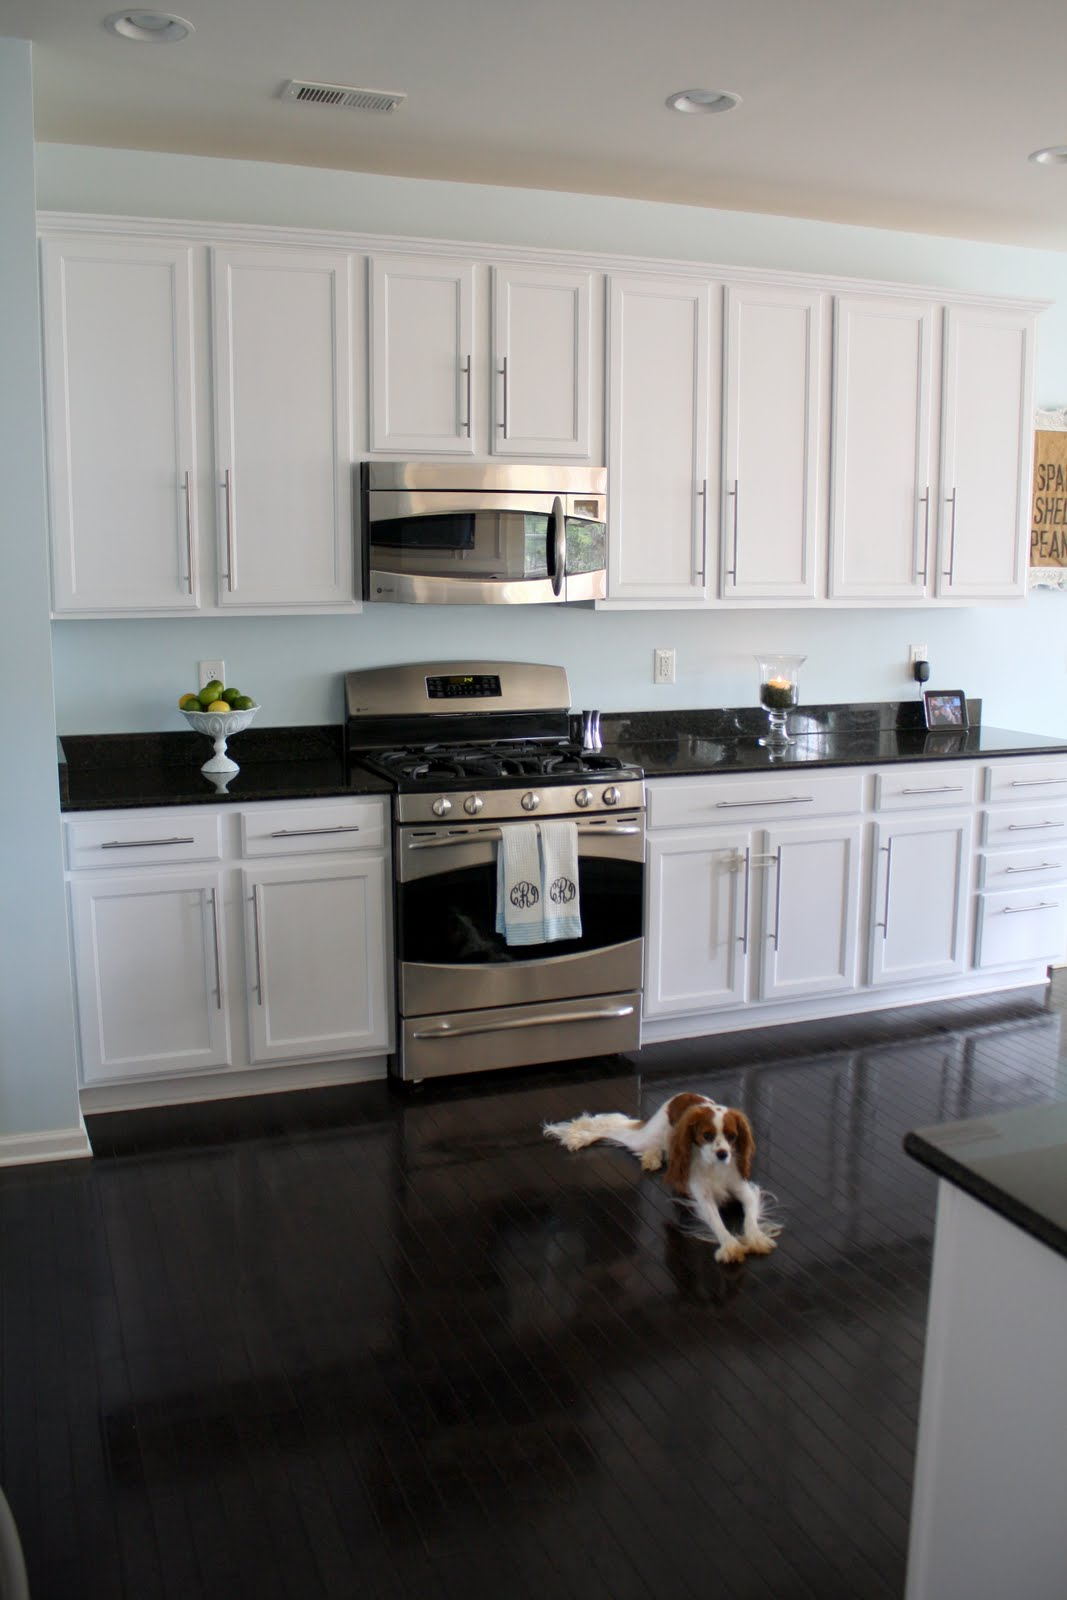 Elegant Black And White Painting Kitchen Countertops Ideas (View 4 of 10)